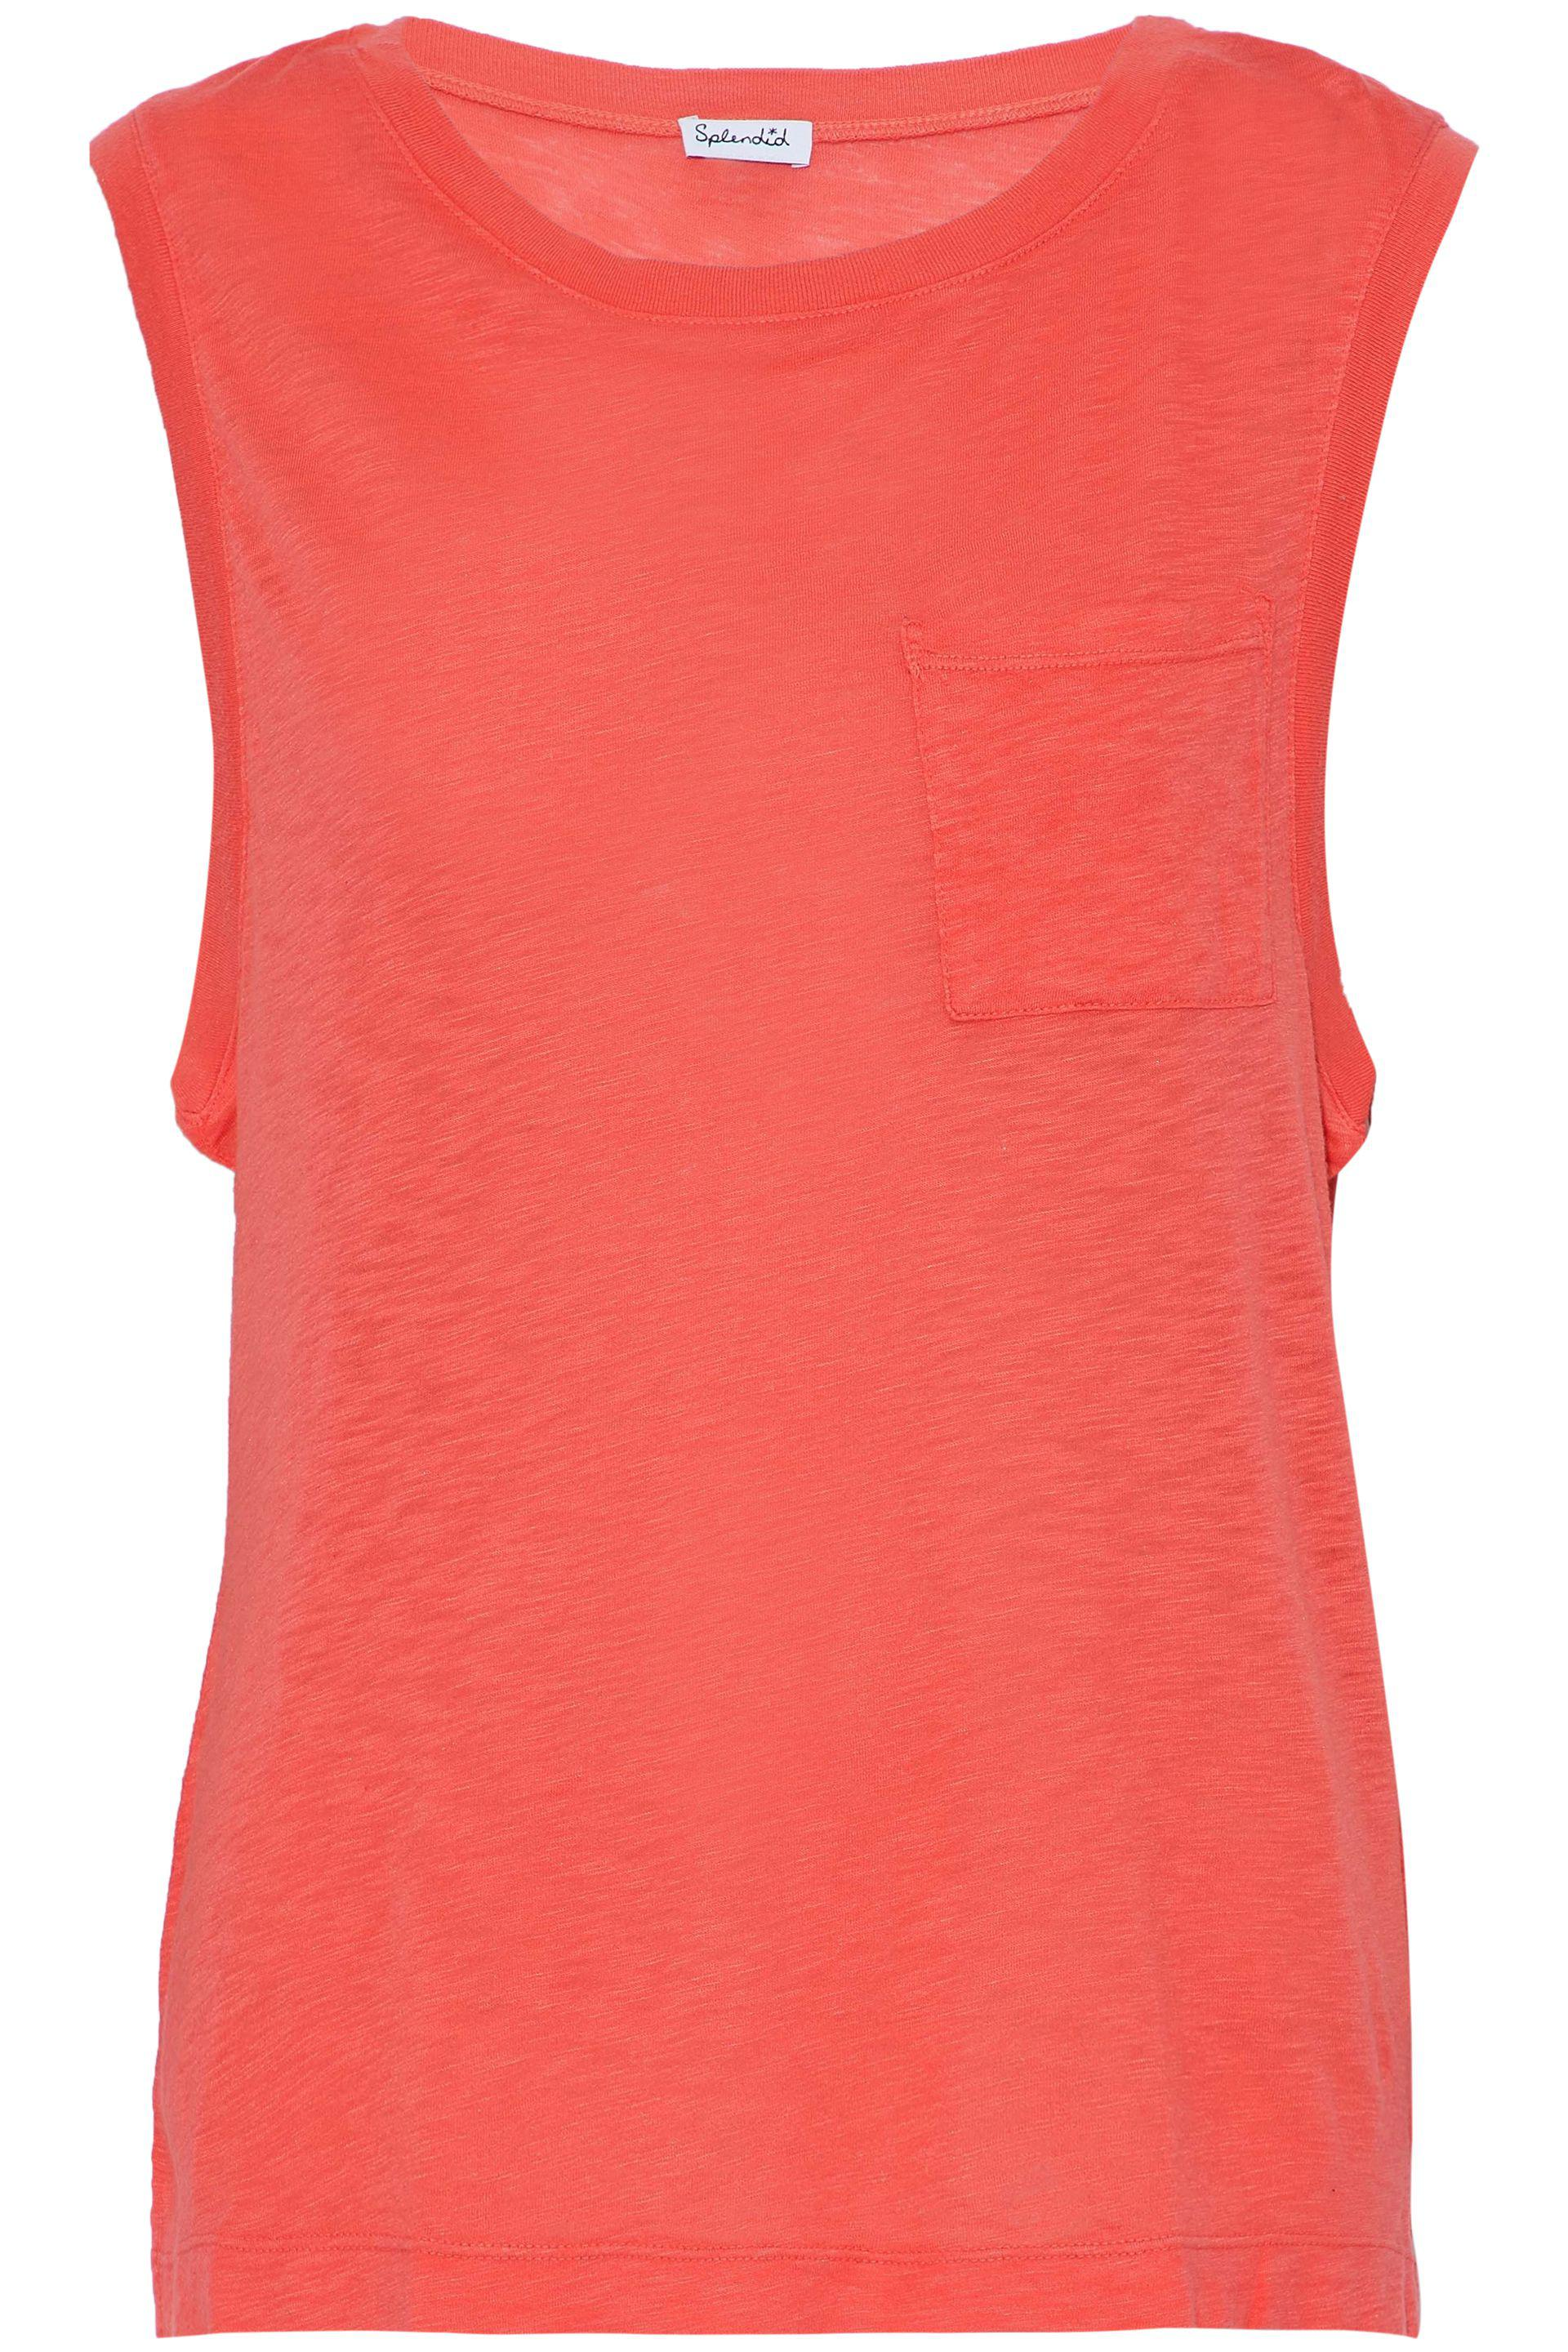 Splendid Woman Slub Cotton And Modal-blend Jersey Top Coral Size L Splendid Free Shipping Sale Clearance Perfect Newest For Sale Fashion Style Sale Online hmhMkS